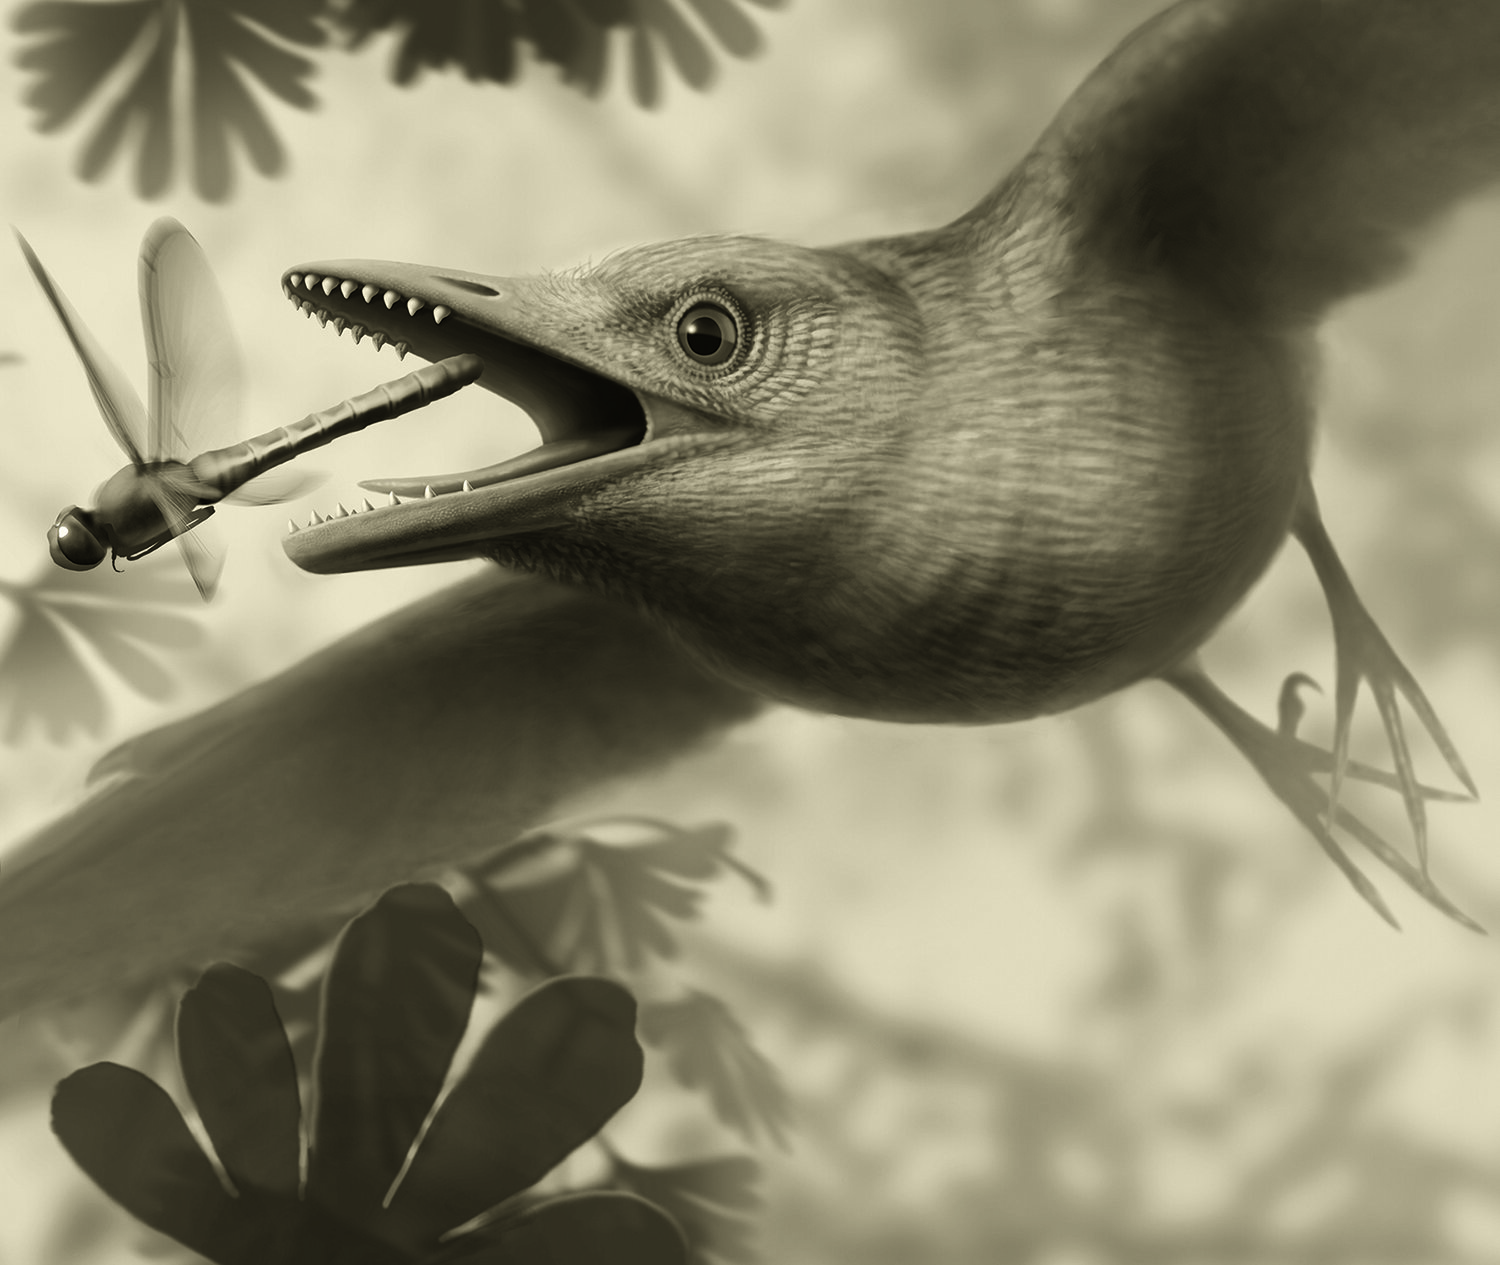 Quartz crystals in the stomach of fossil bird complicates the mystery of its diet - Phys.org